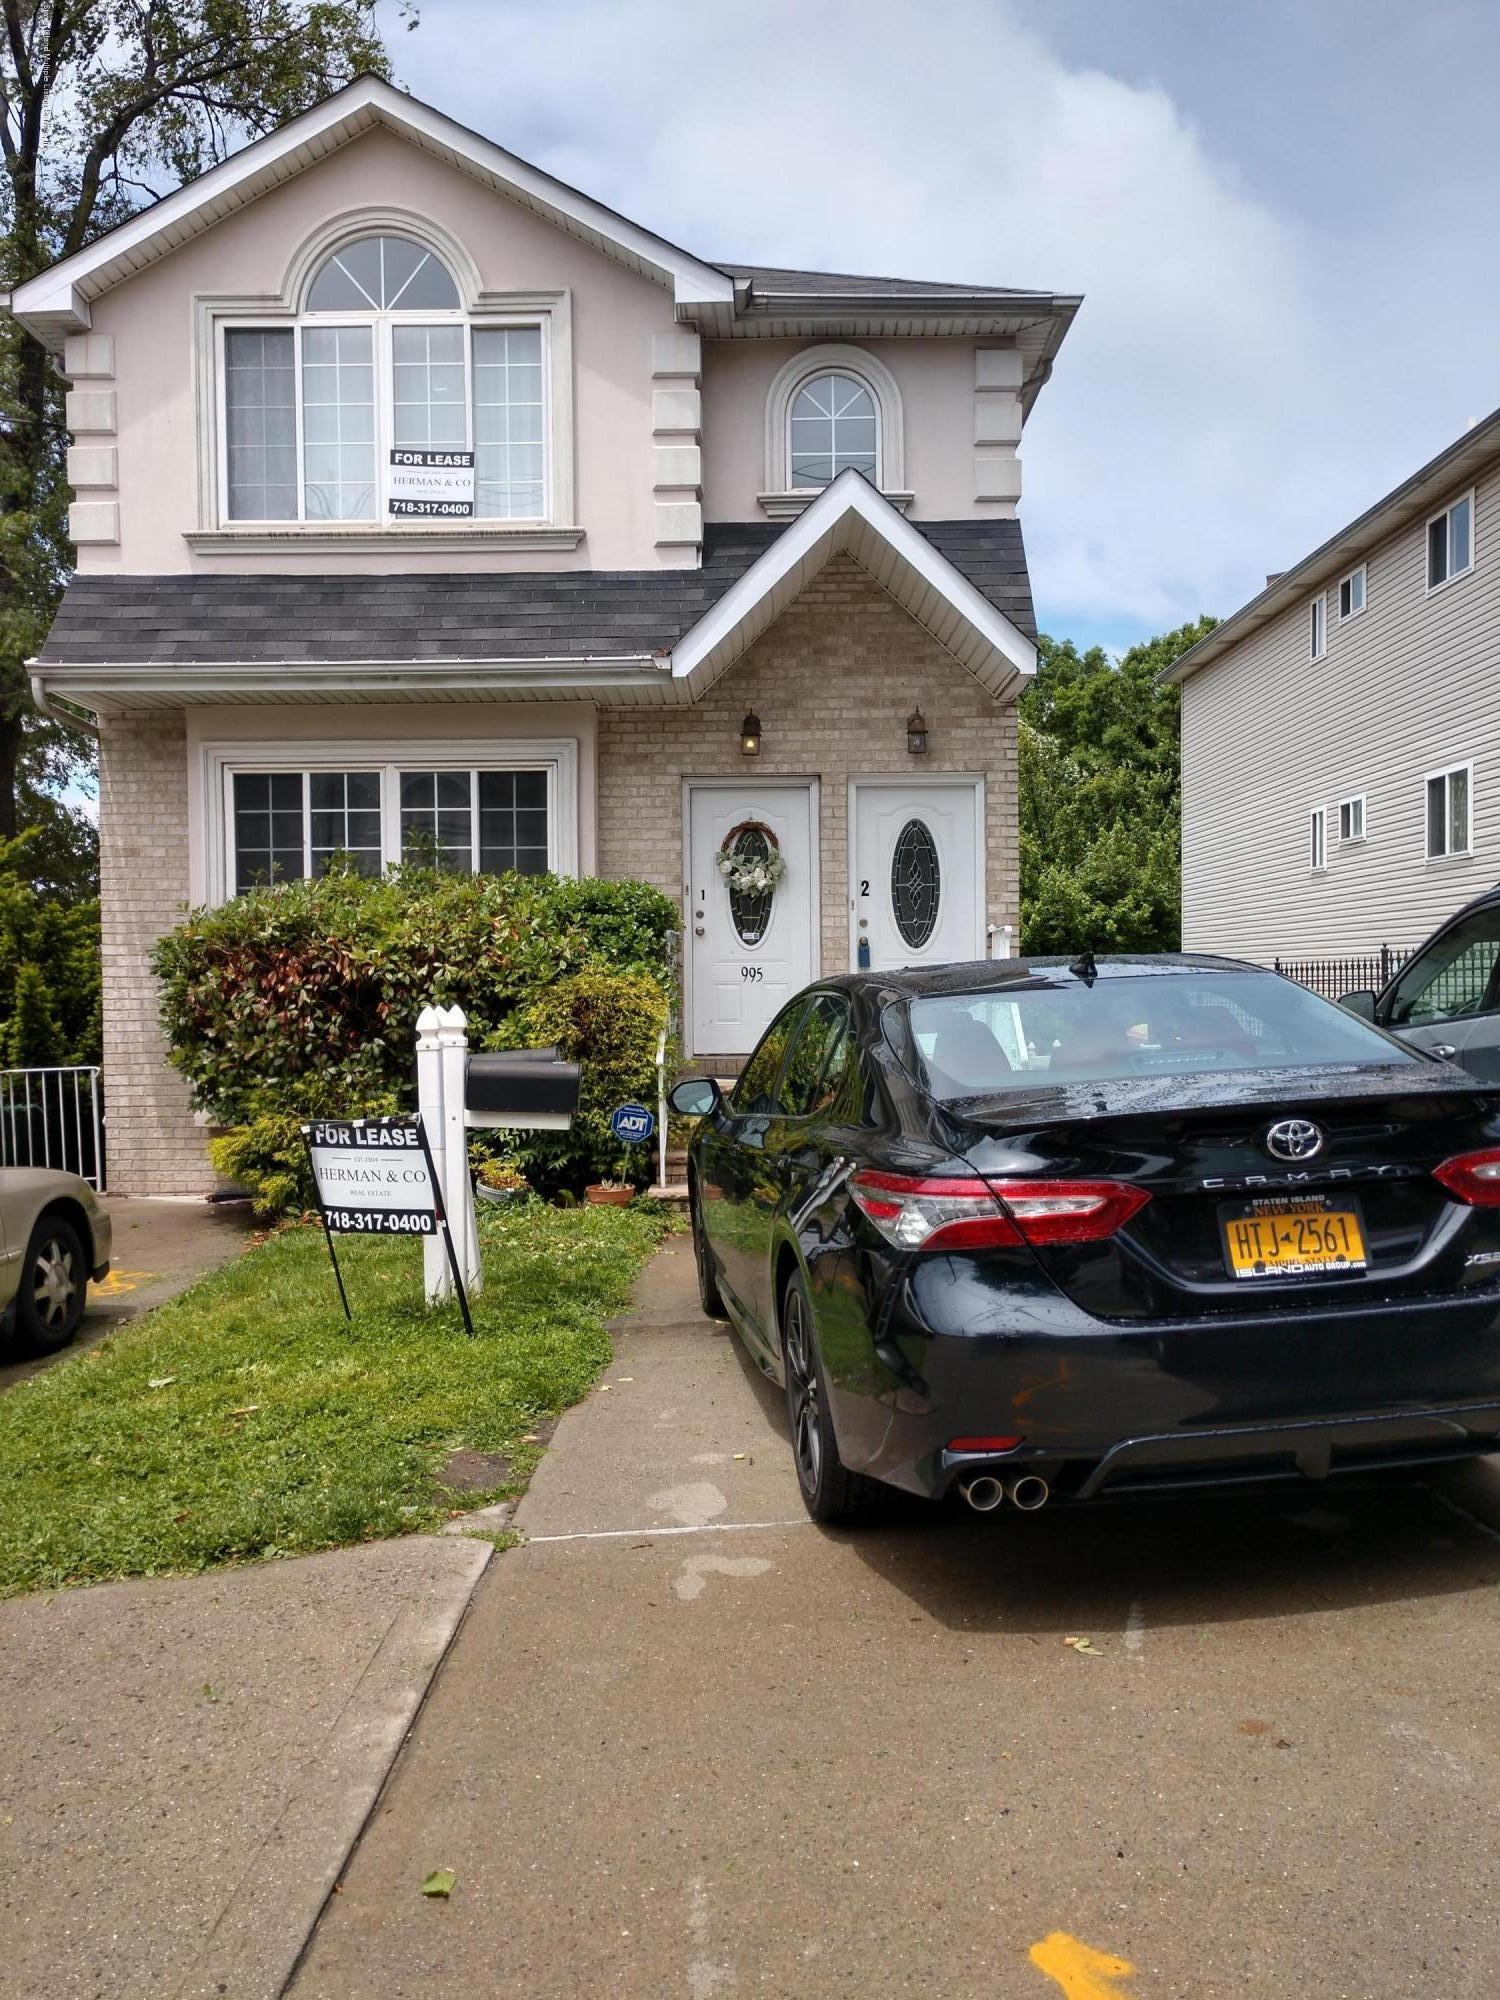 995 Victory Boulevard,Staten Island,New York,10301,United States,3 Bedrooms Bedrooms,6 Rooms Rooms,2 BathroomsBathrooms,Res-Rental,Victory,1129576